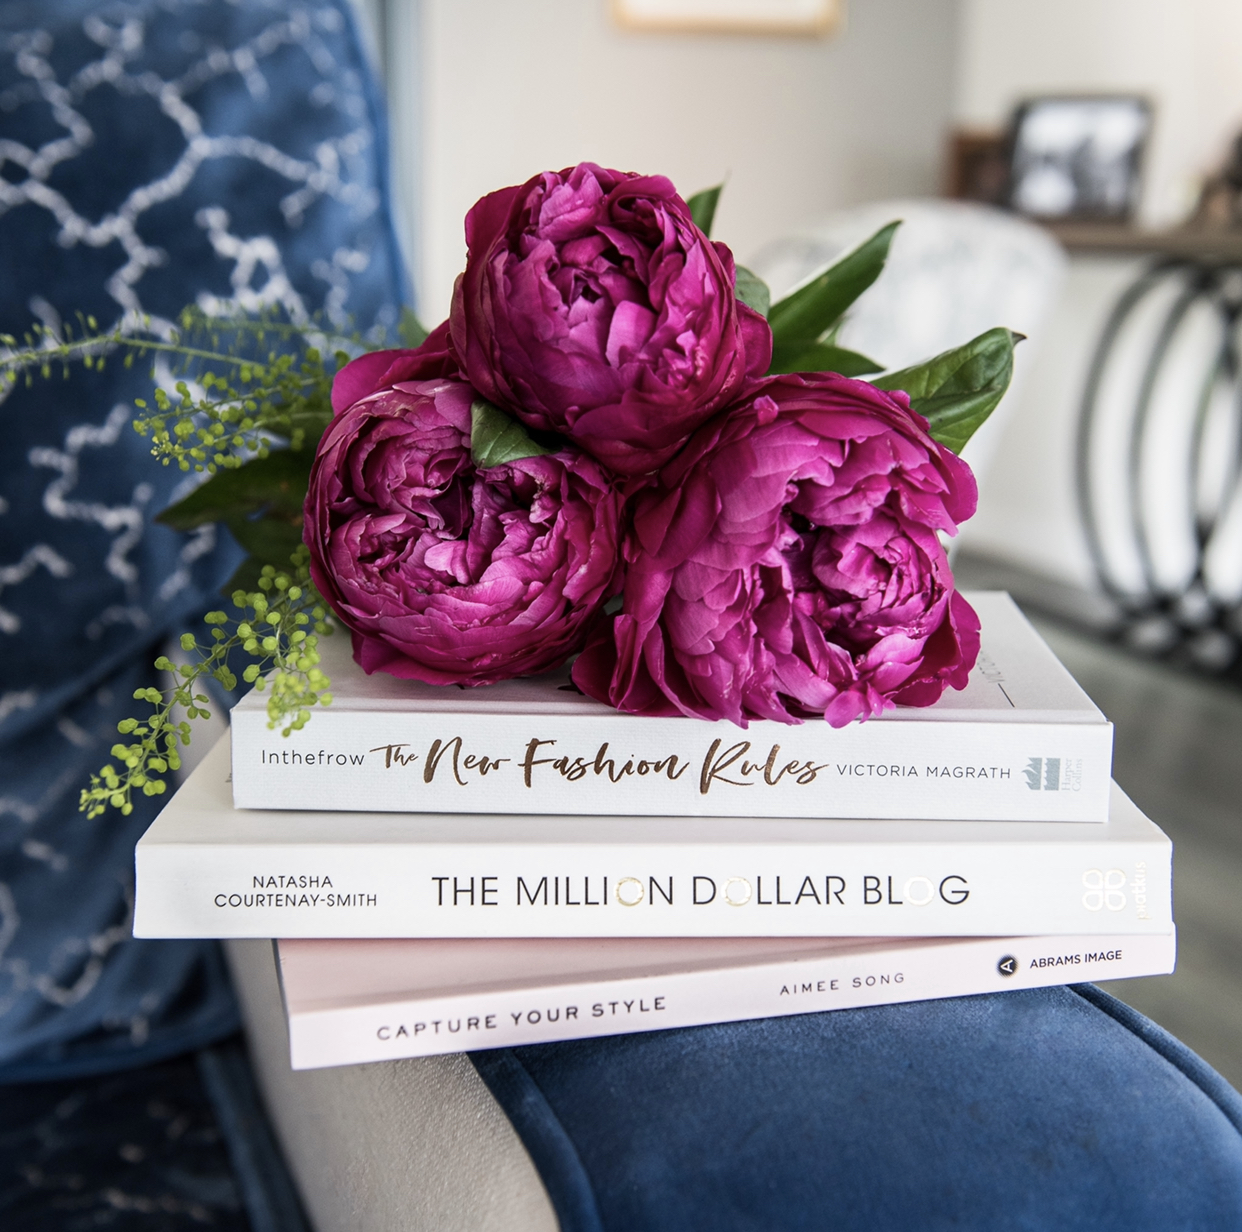 Three style books with three peonies